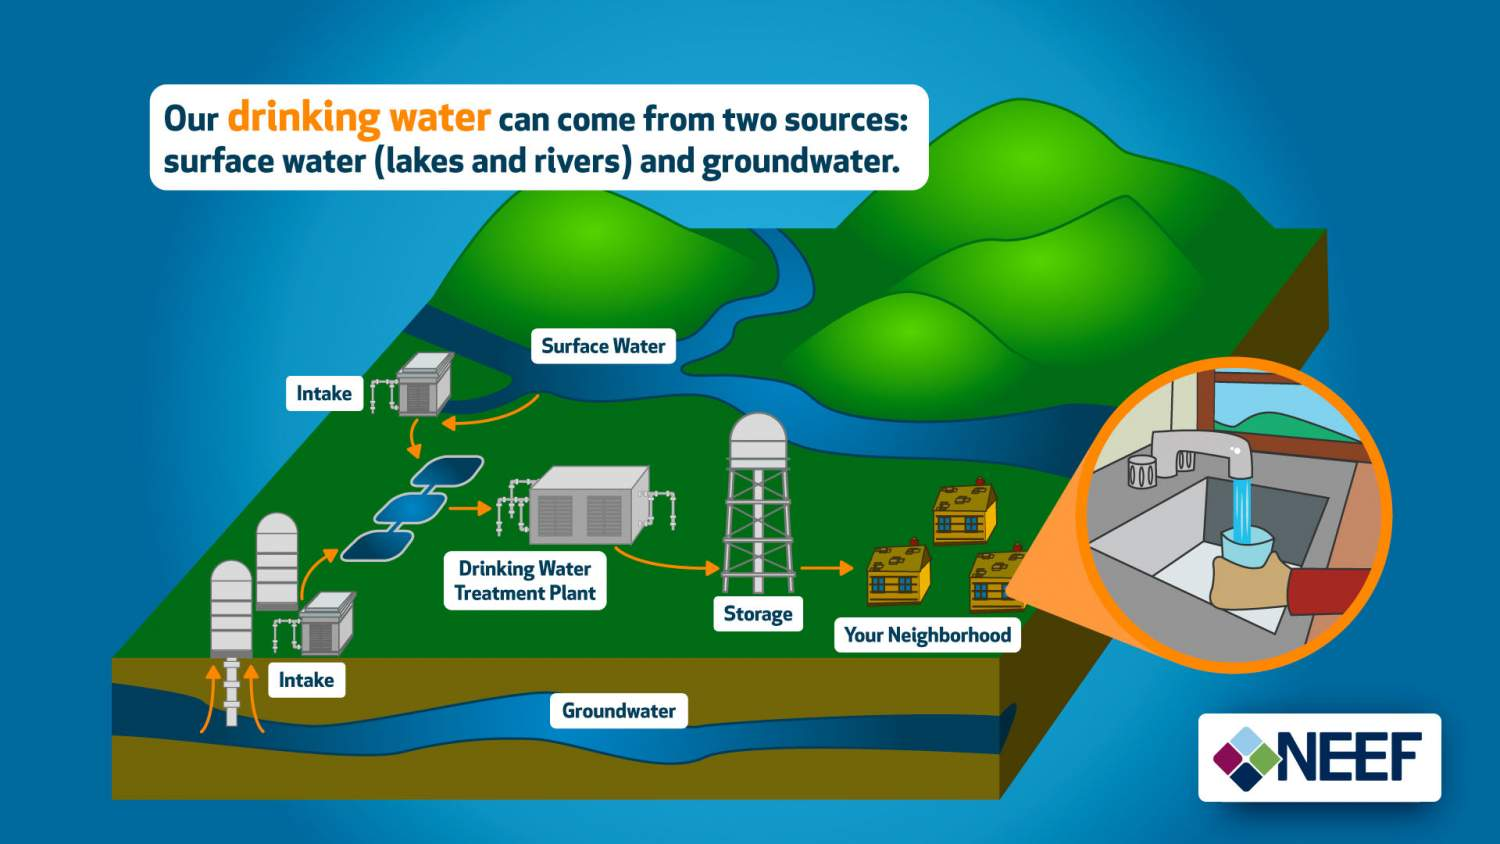 Our drinking water can come from two sources: surface water (lakes and rivers) and groundwater.